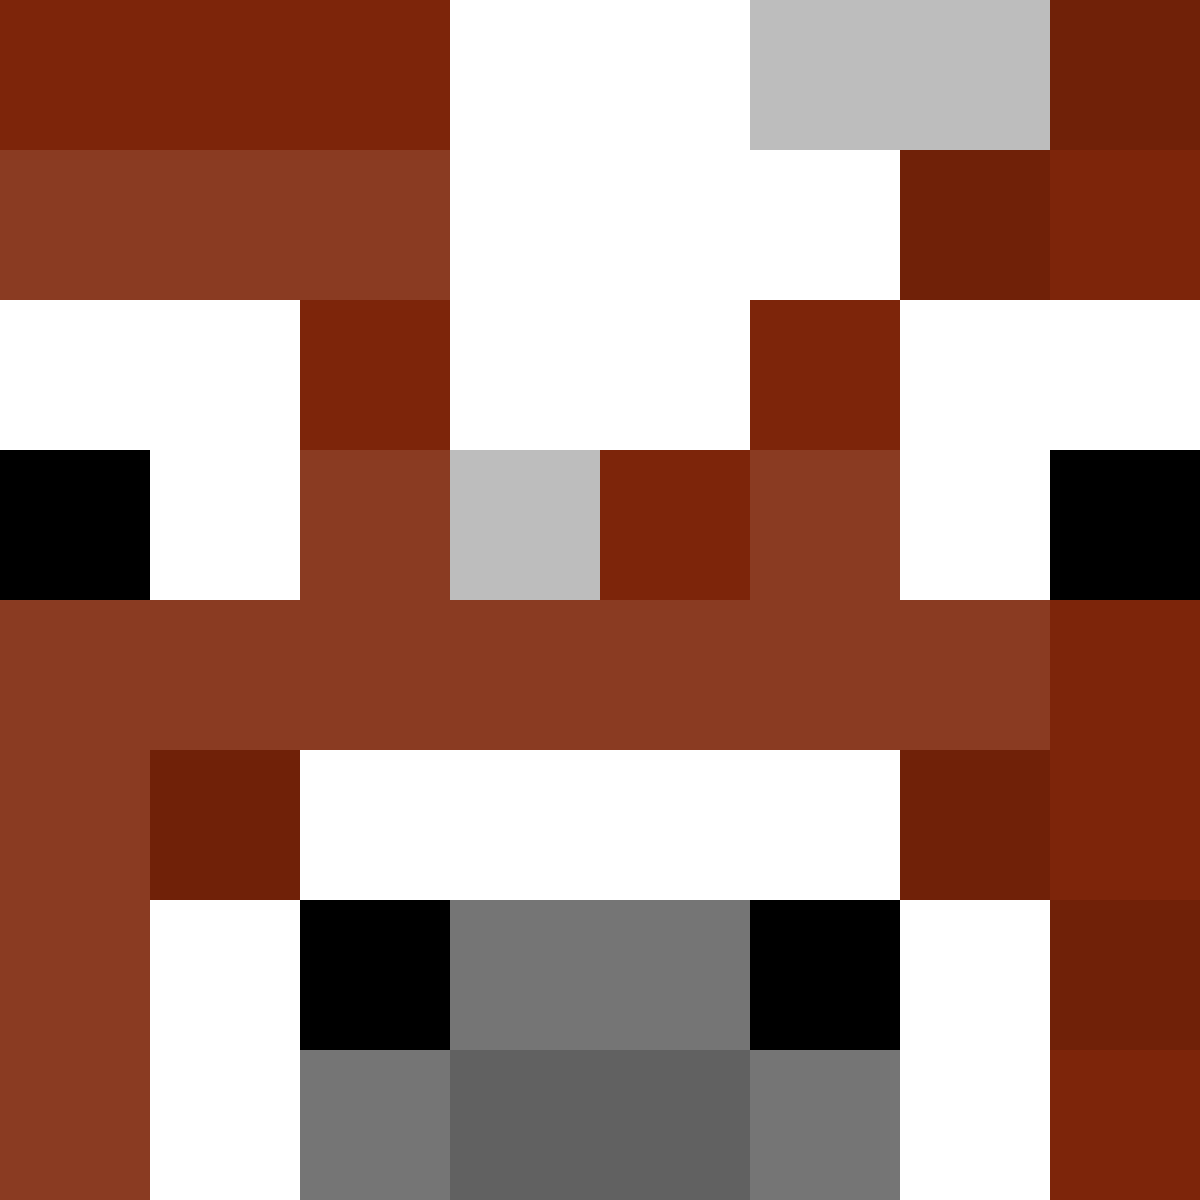 Minecraft Cow by AngelitoO5